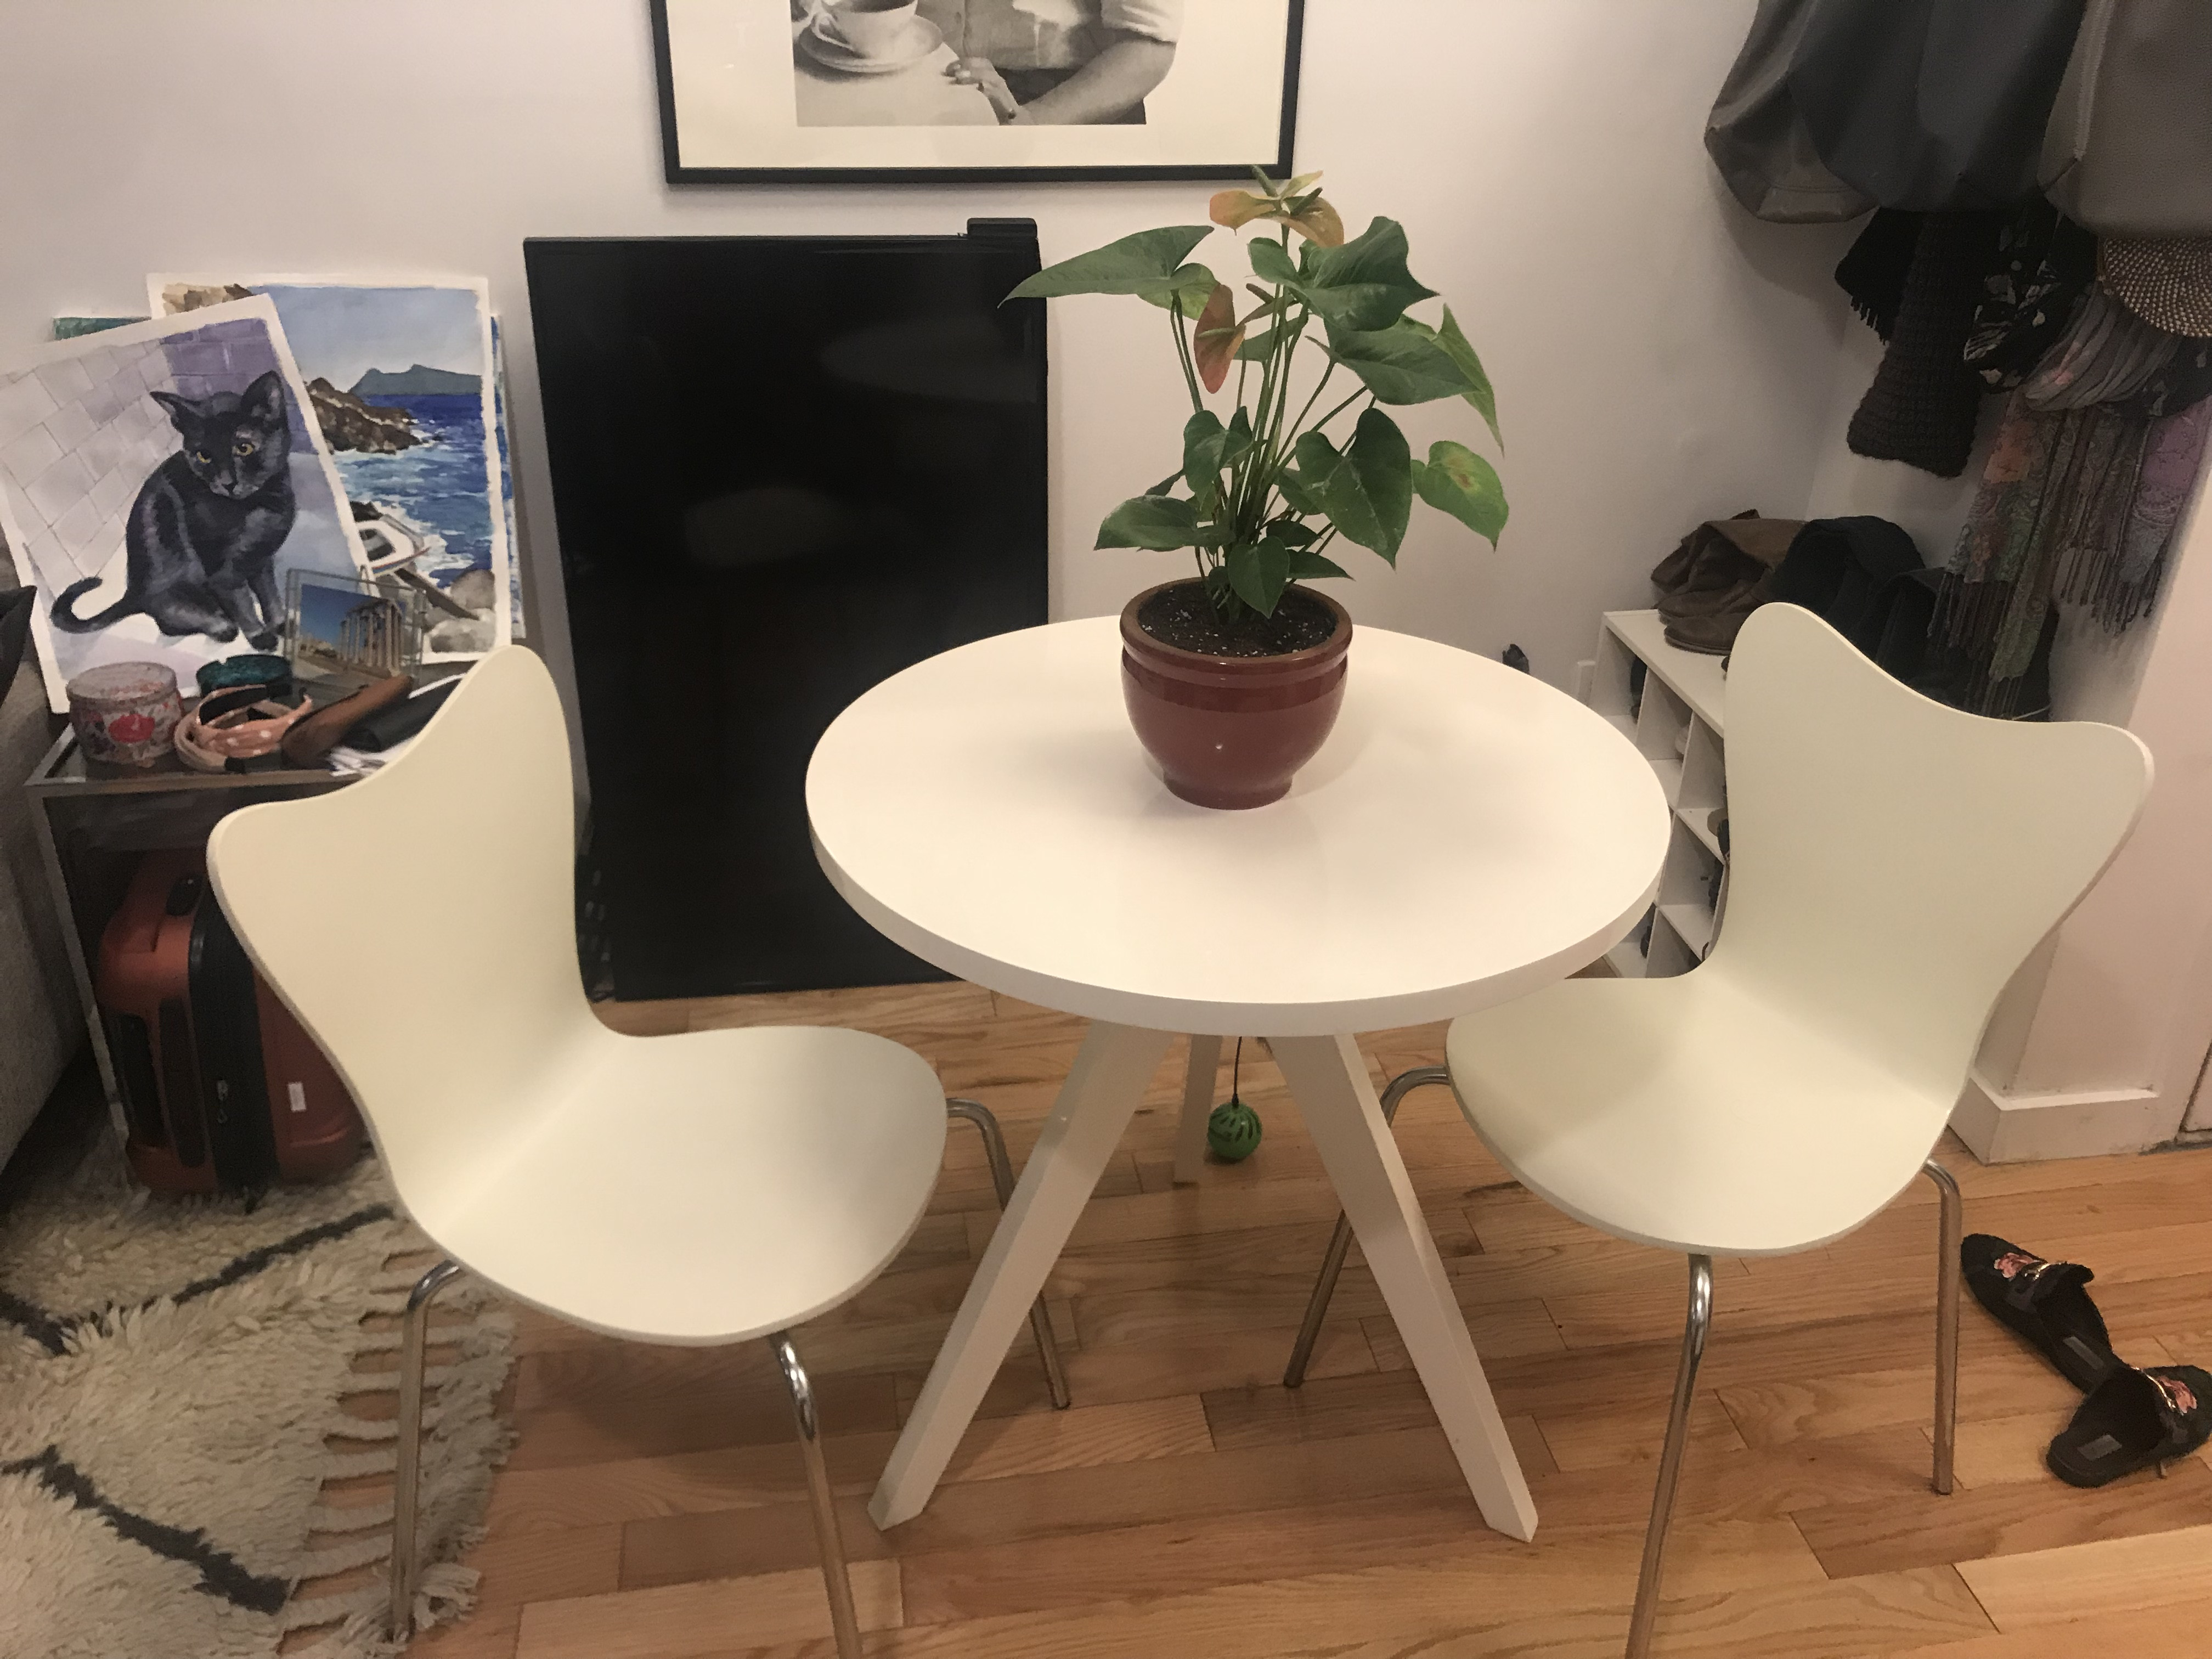 West Elm Dining Table w/ 2 Chairs